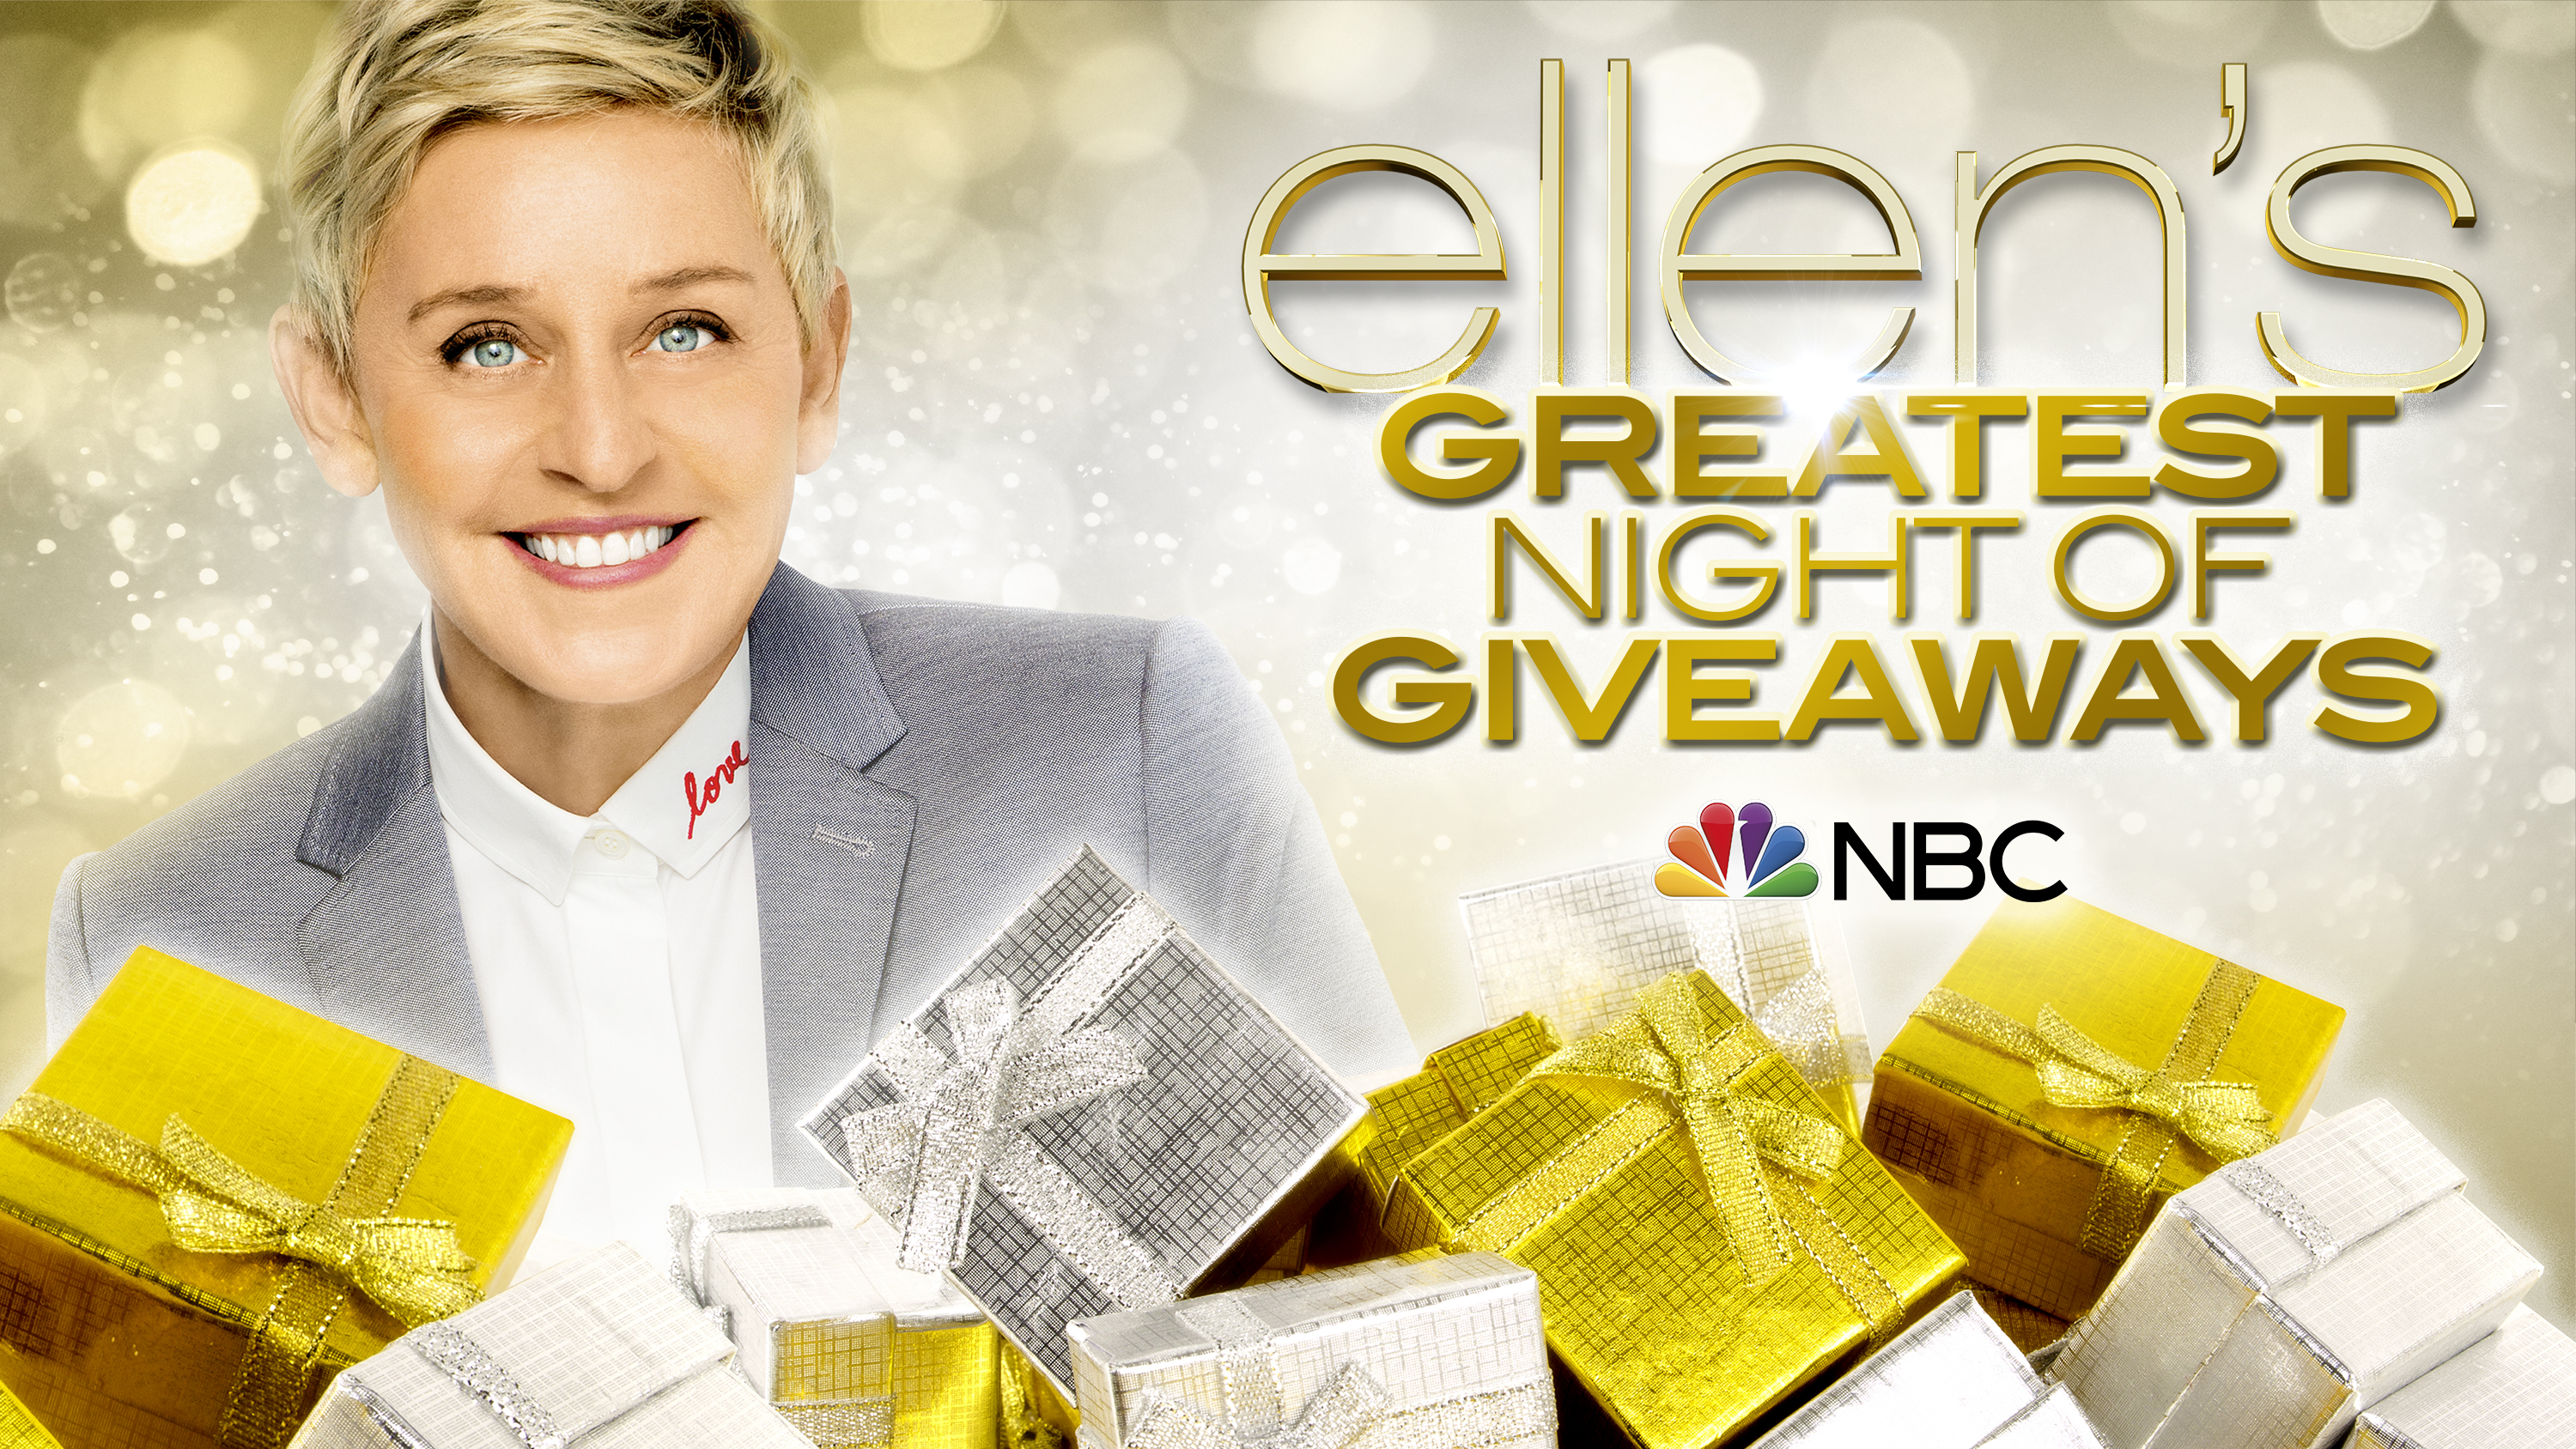 Ellens Christmas Giveaway For 2020 A new holiday tradition: Ellen's Greatest Night of Giveaways